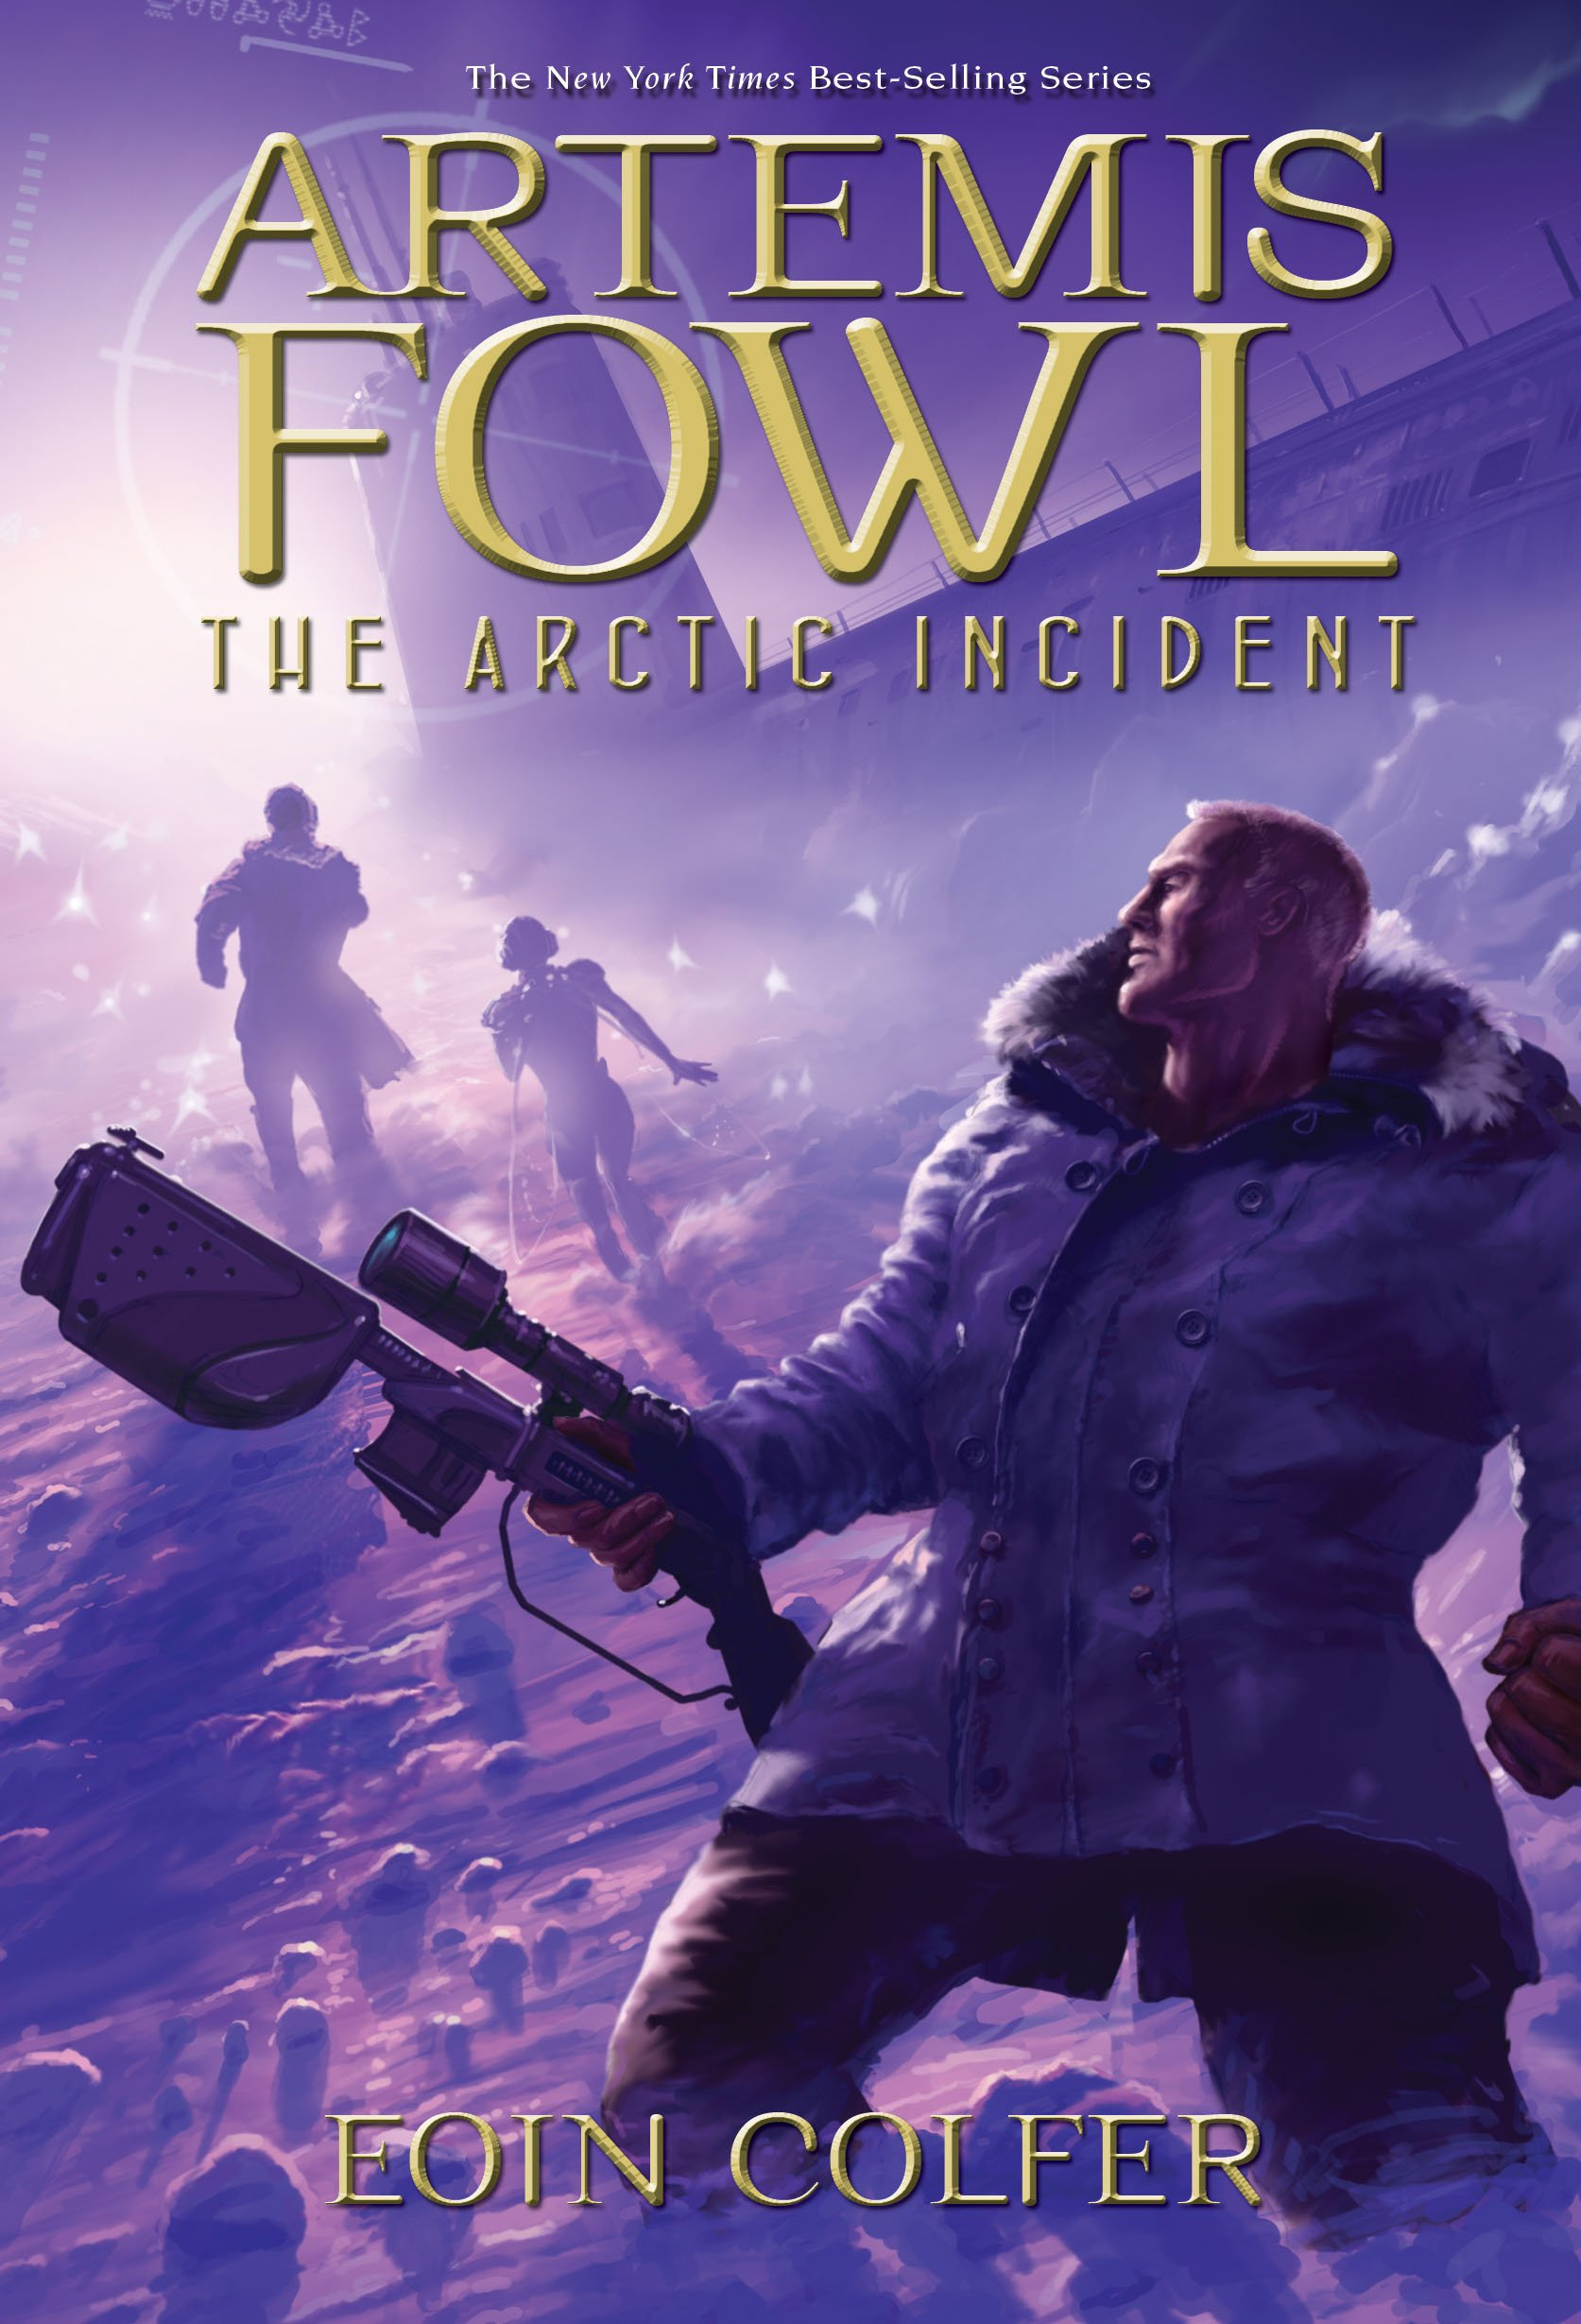 Artemis Fowl: The Arctic Incident (book 2): Eoin Colfer: 9781423124542:  Amazon: Books